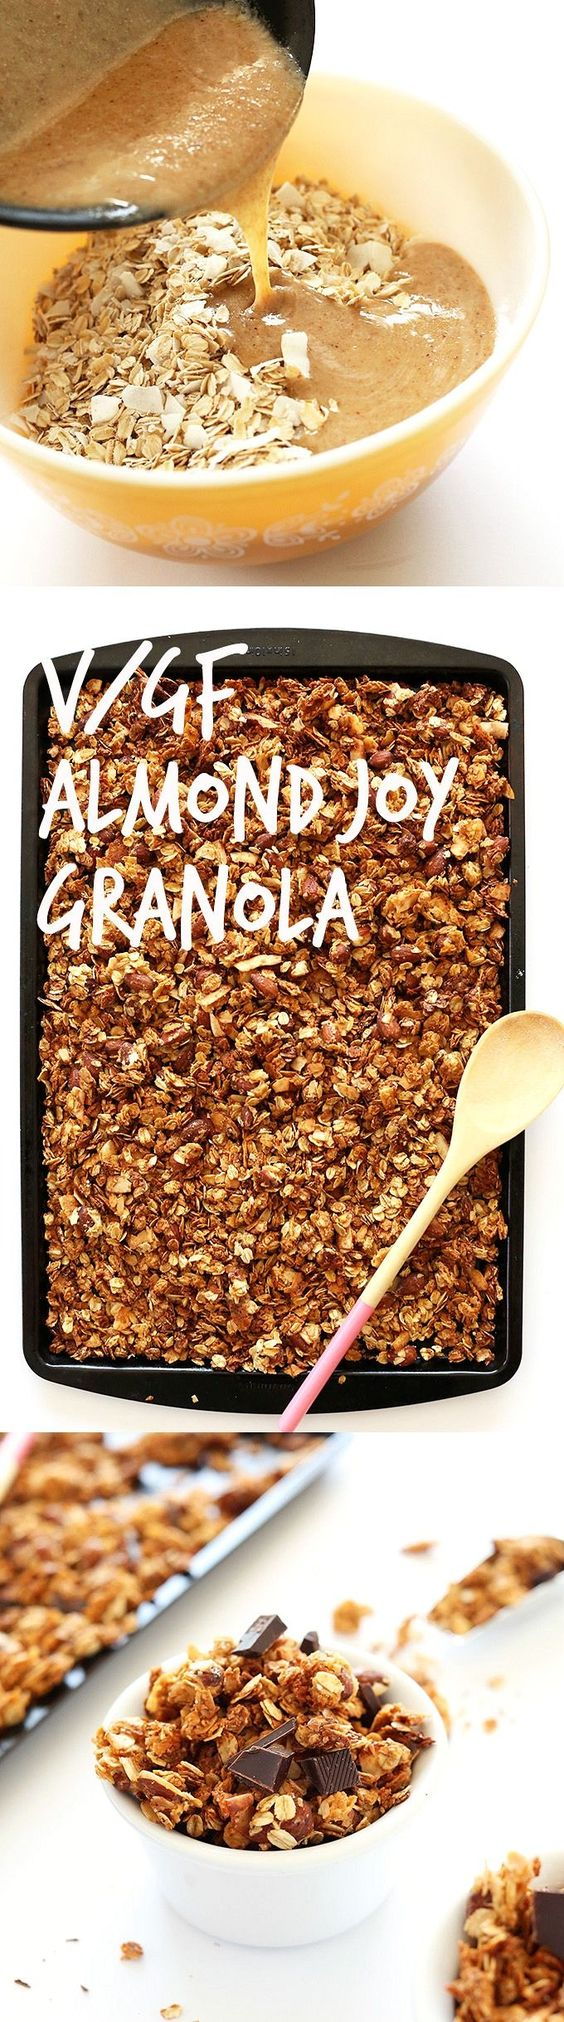 Almond Joy Granola | Recipe | Almond joy, Granola and ...